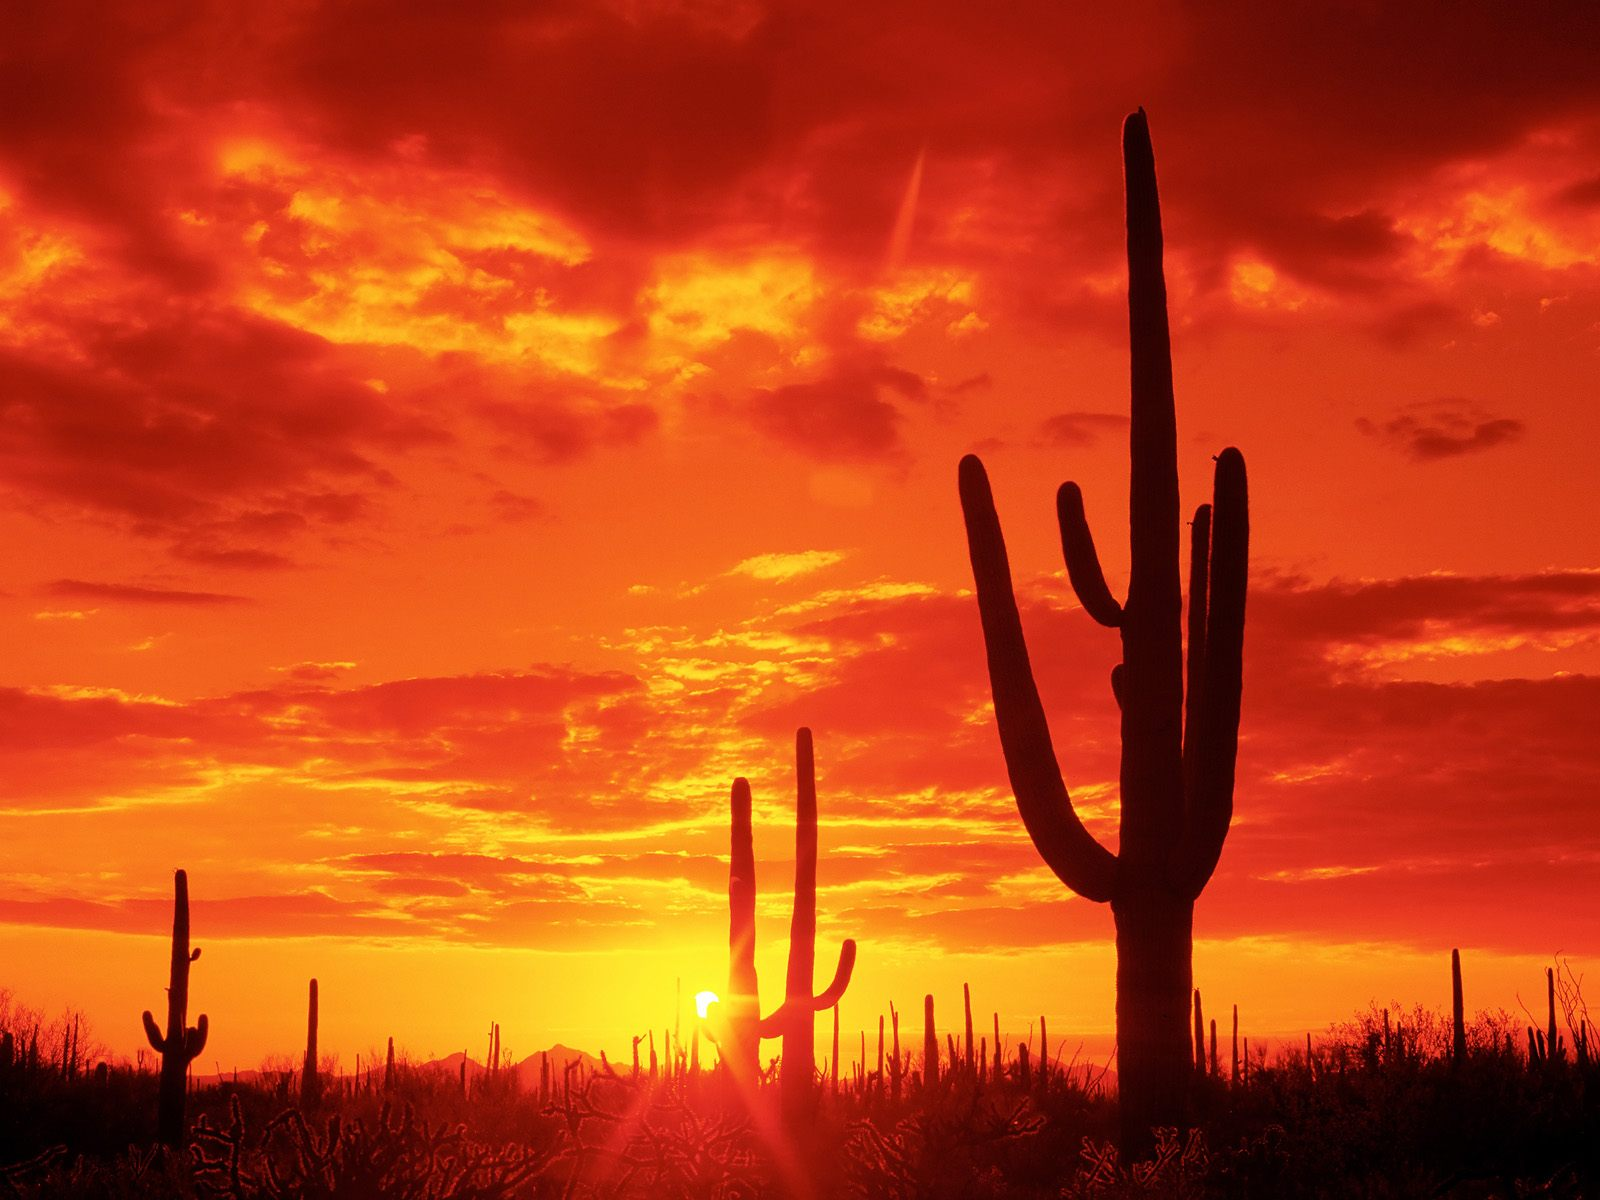 Arizona Sunset wallpaper 1600x1200 79406 1600x1200